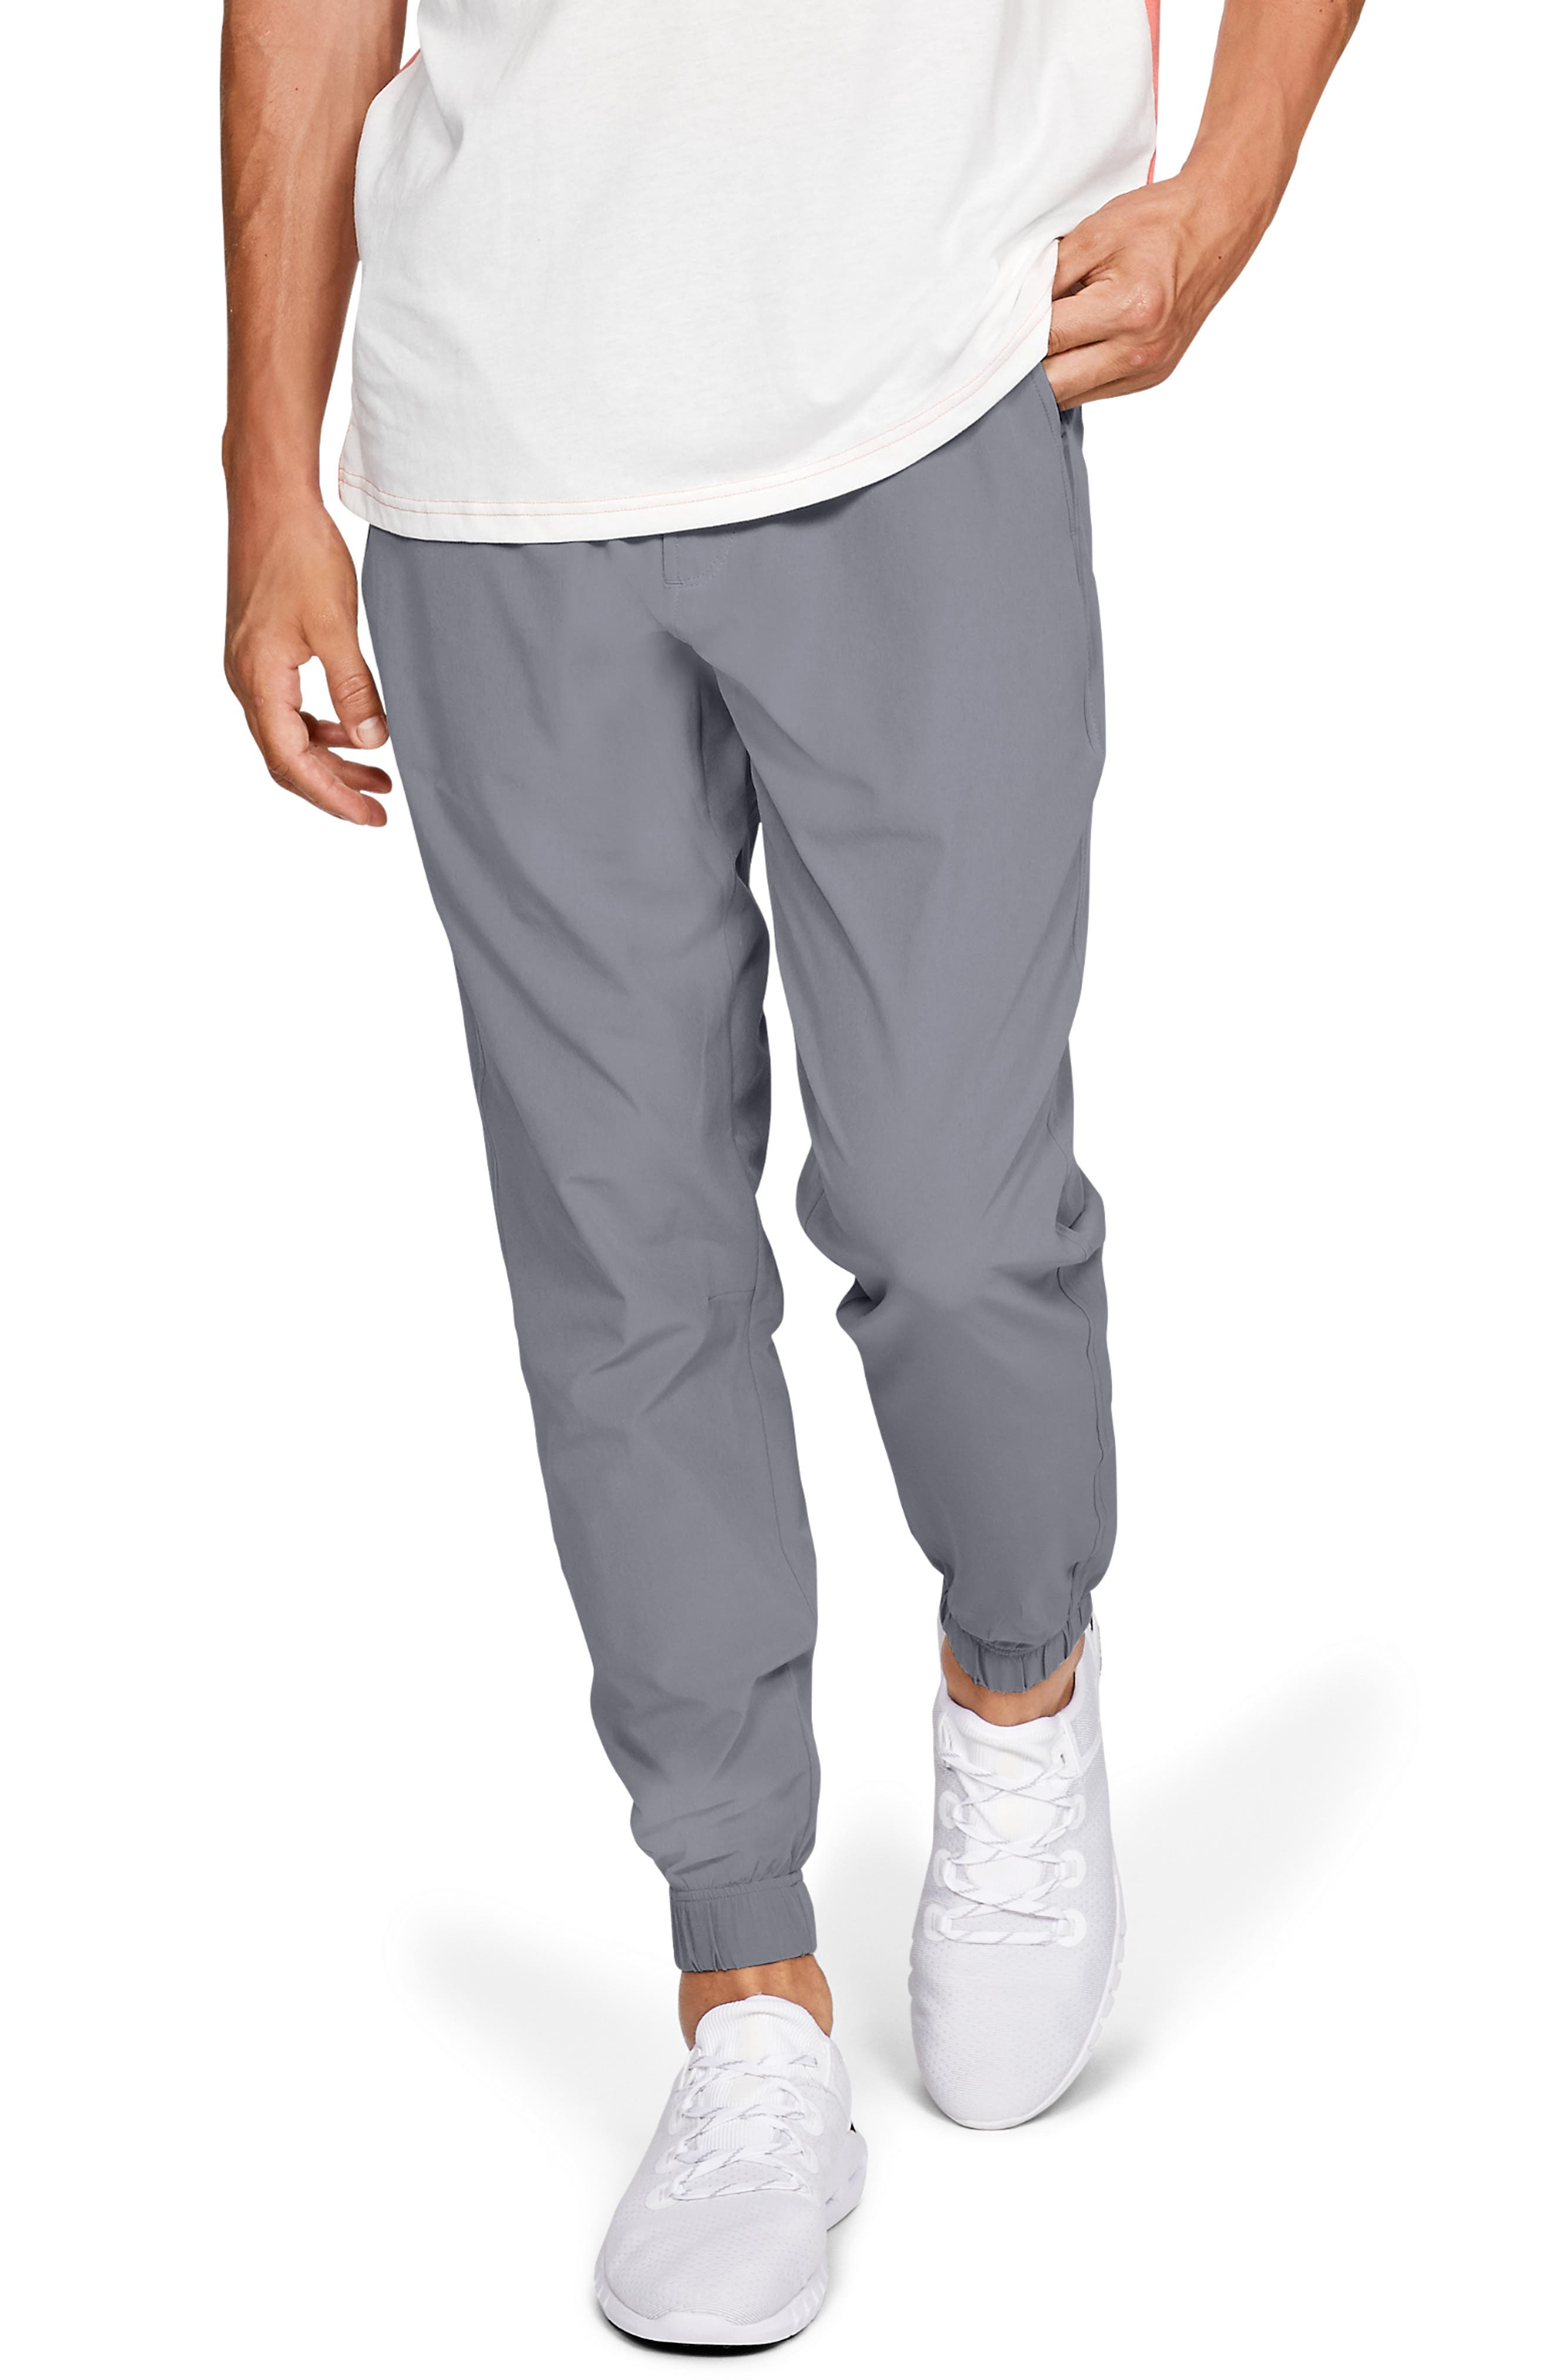 Under Armour Spostyle Live-In Sweatpants